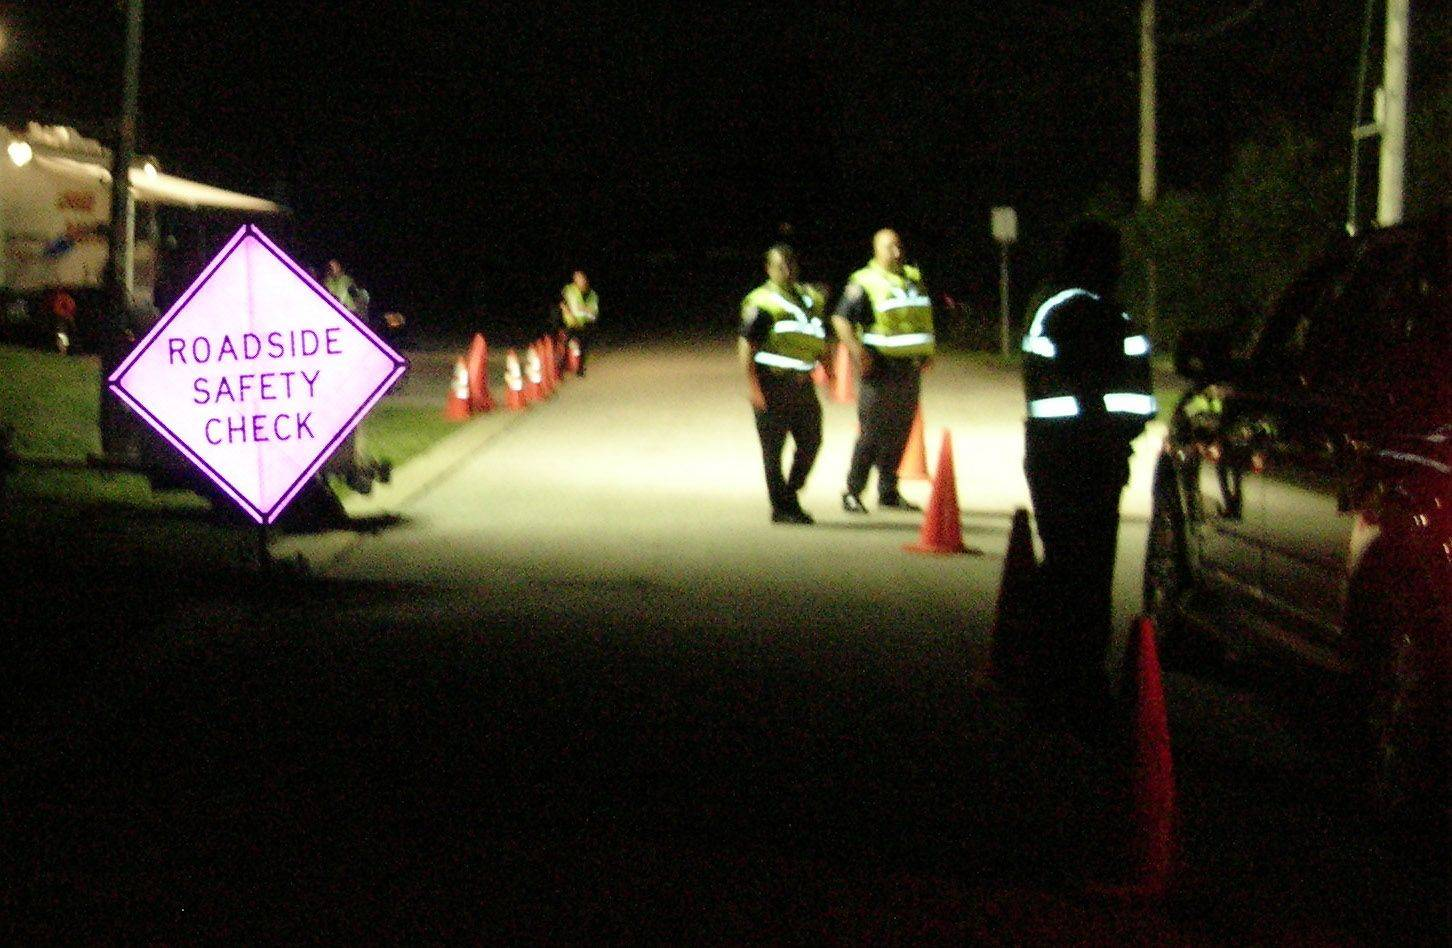 Lombard police check drivers for alcohol impairment and other violations during a roadside safety check funded by a grant from the Illinois Department of Transportation. Lombard received a $6,579 grant this year to conduct a traffic safety enforcement campaign around Labor Day weekend.